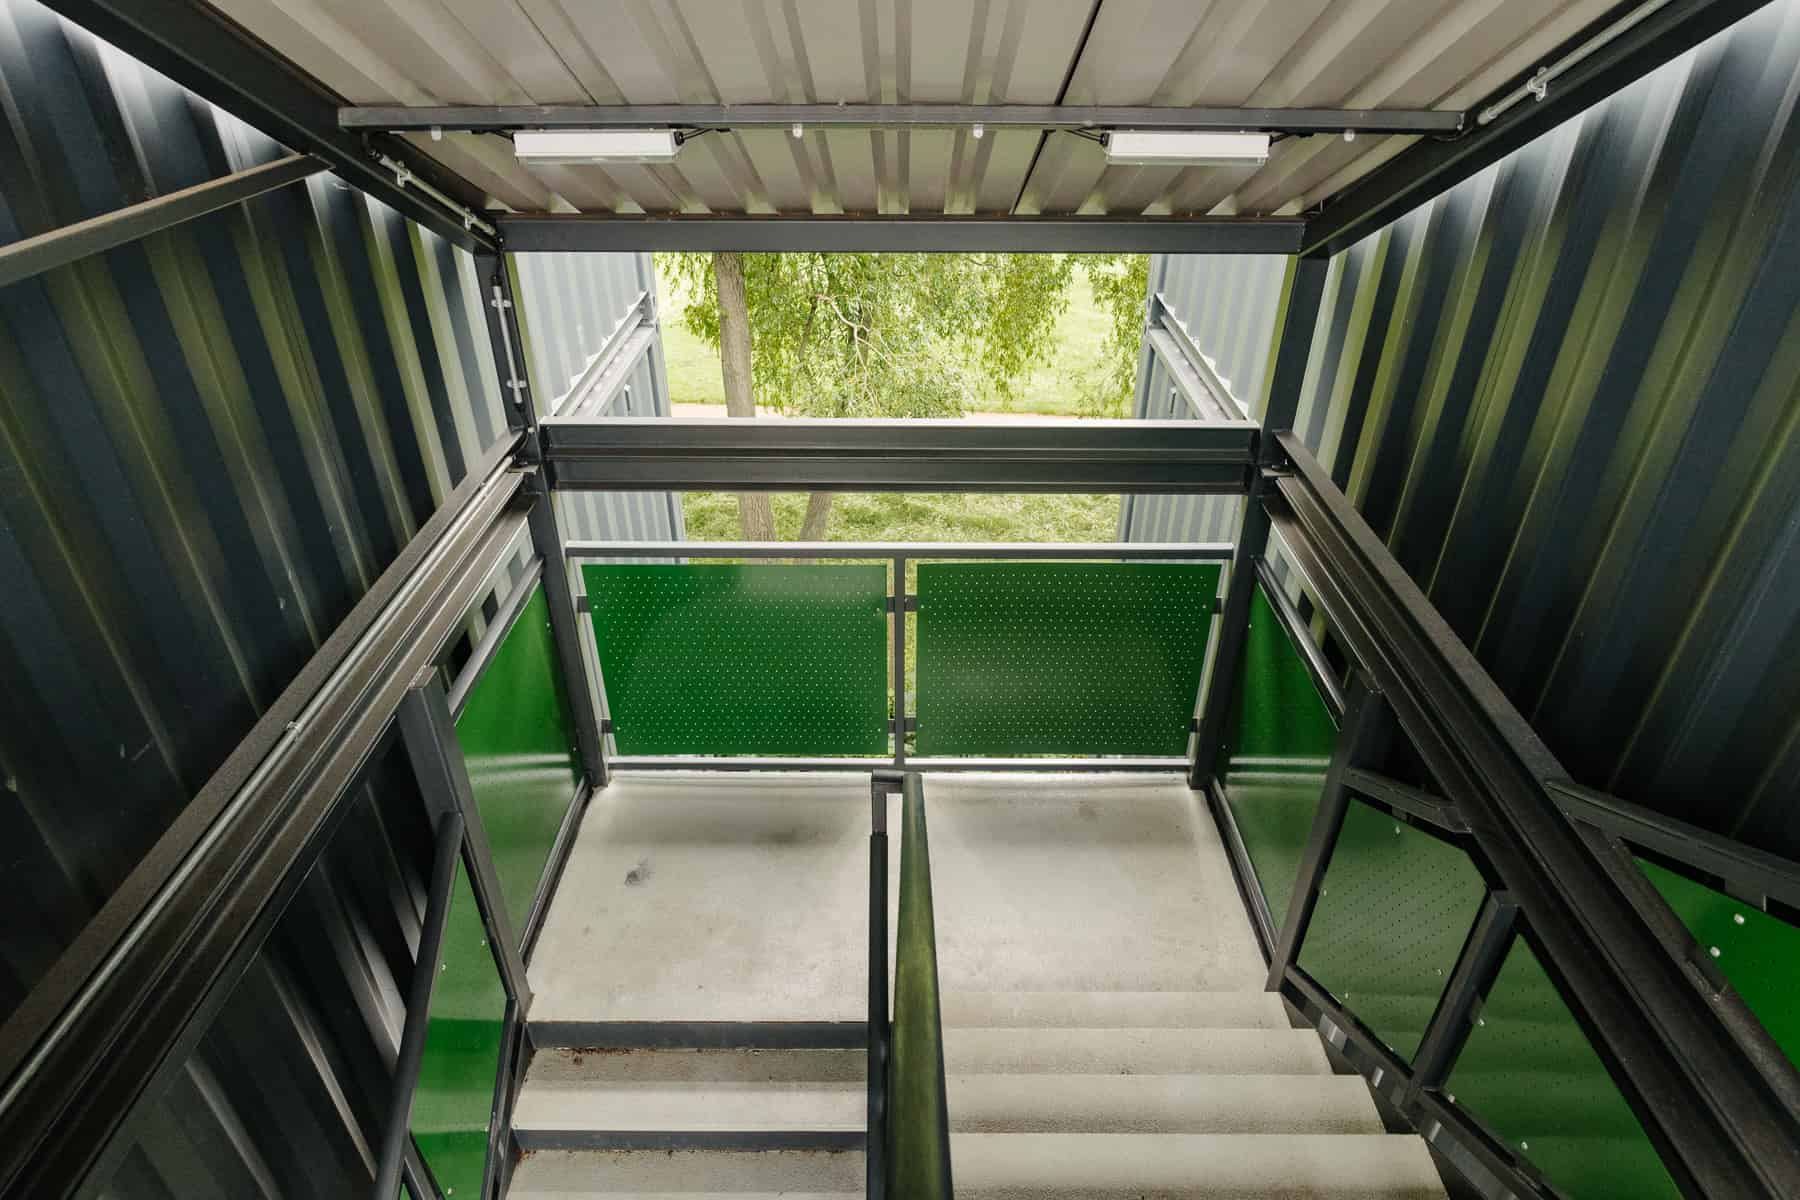 Walkways of shipping container accommodation